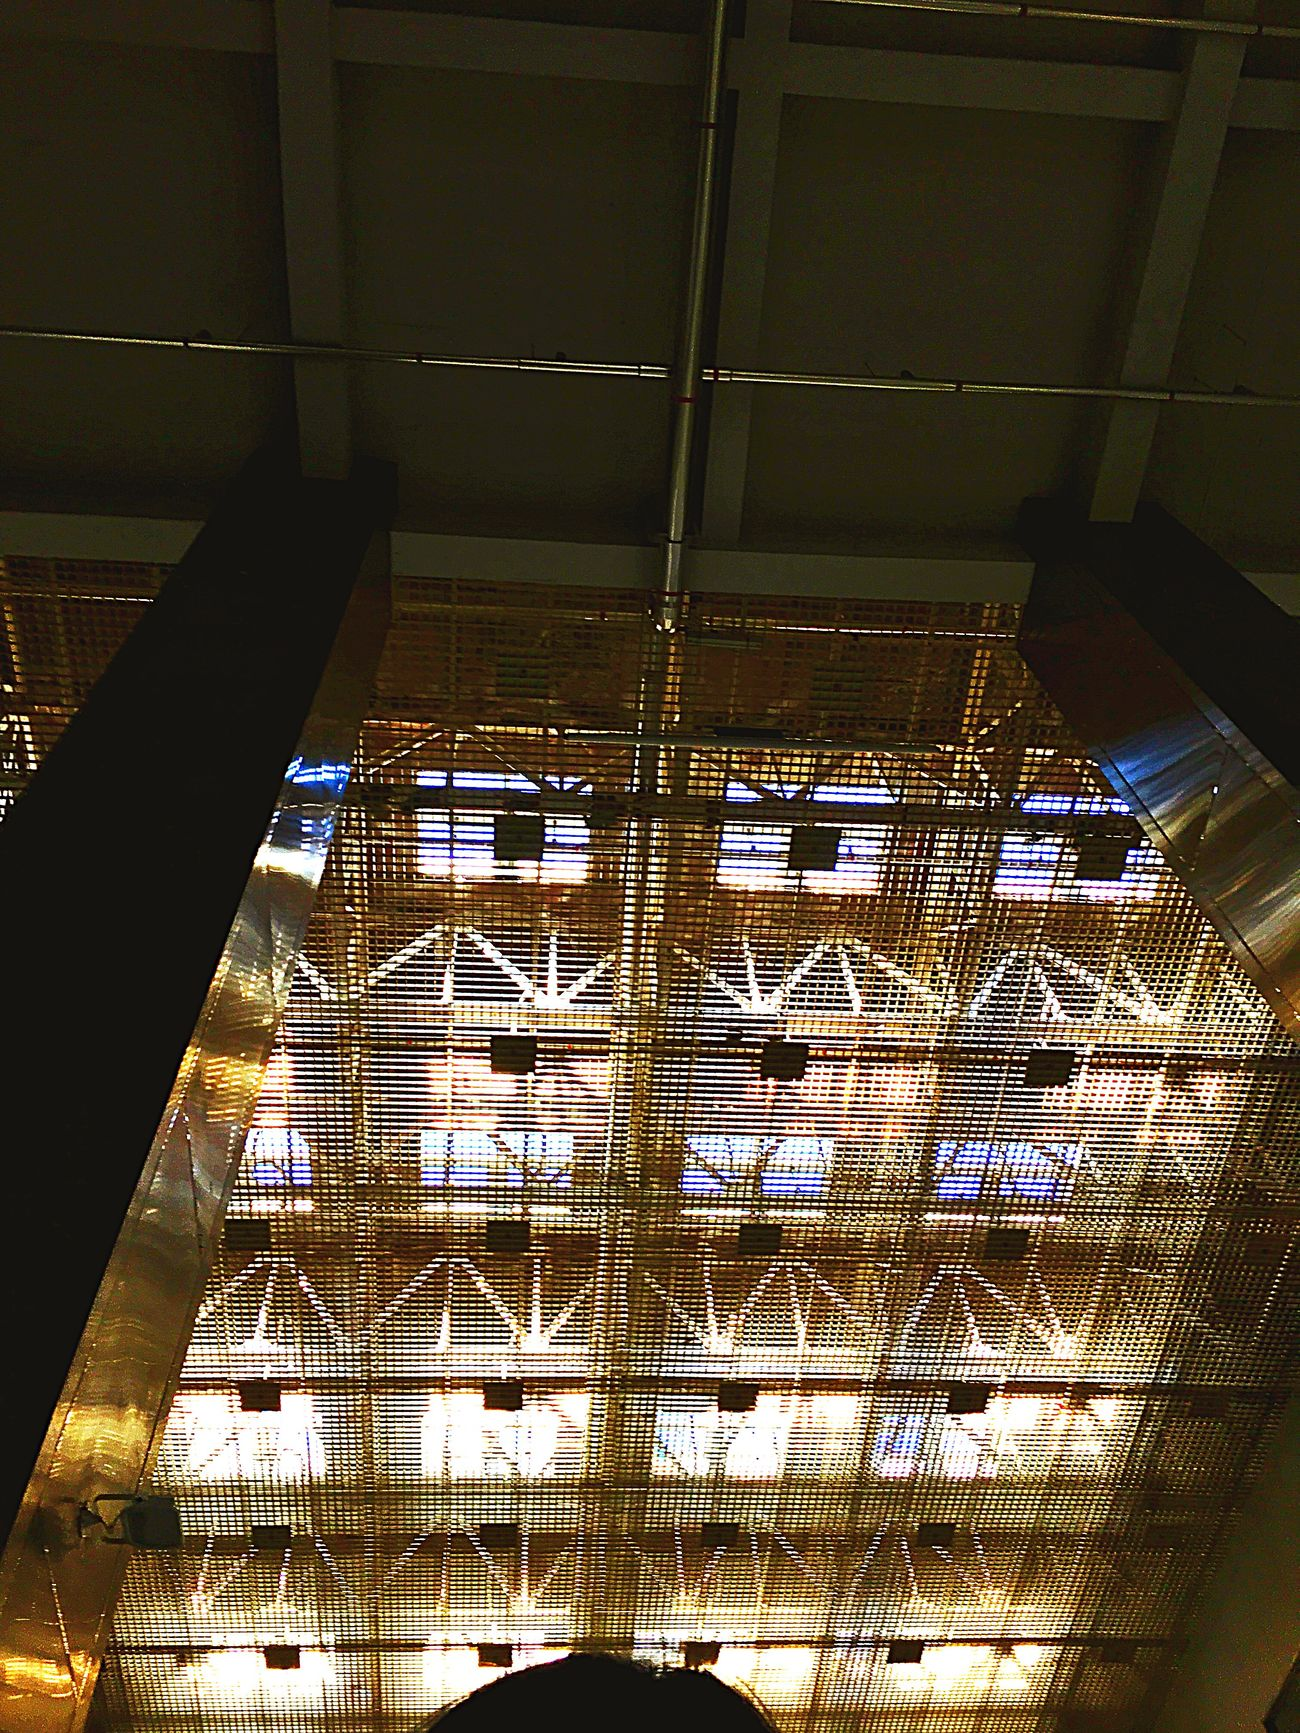 Indoors  Built Structure No People Low Angle View Architecture Illuminated Day